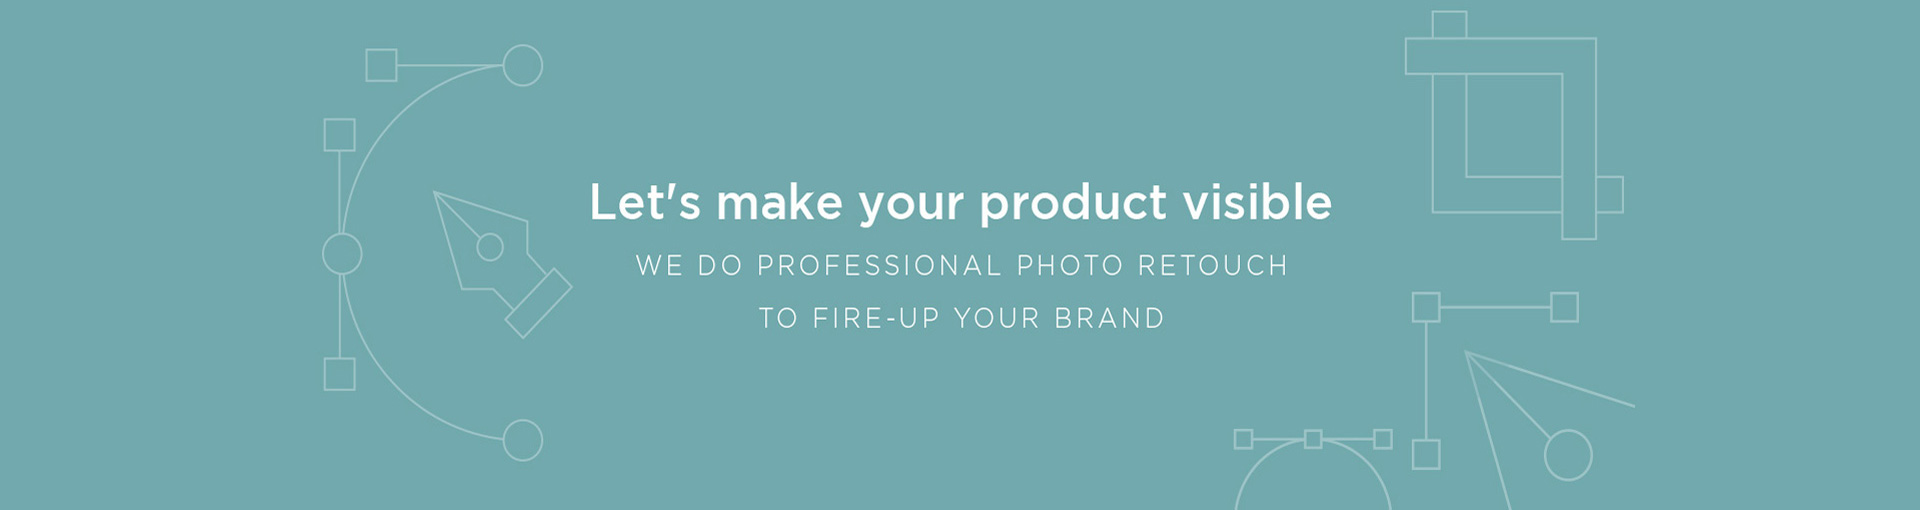 Let's make your product visible